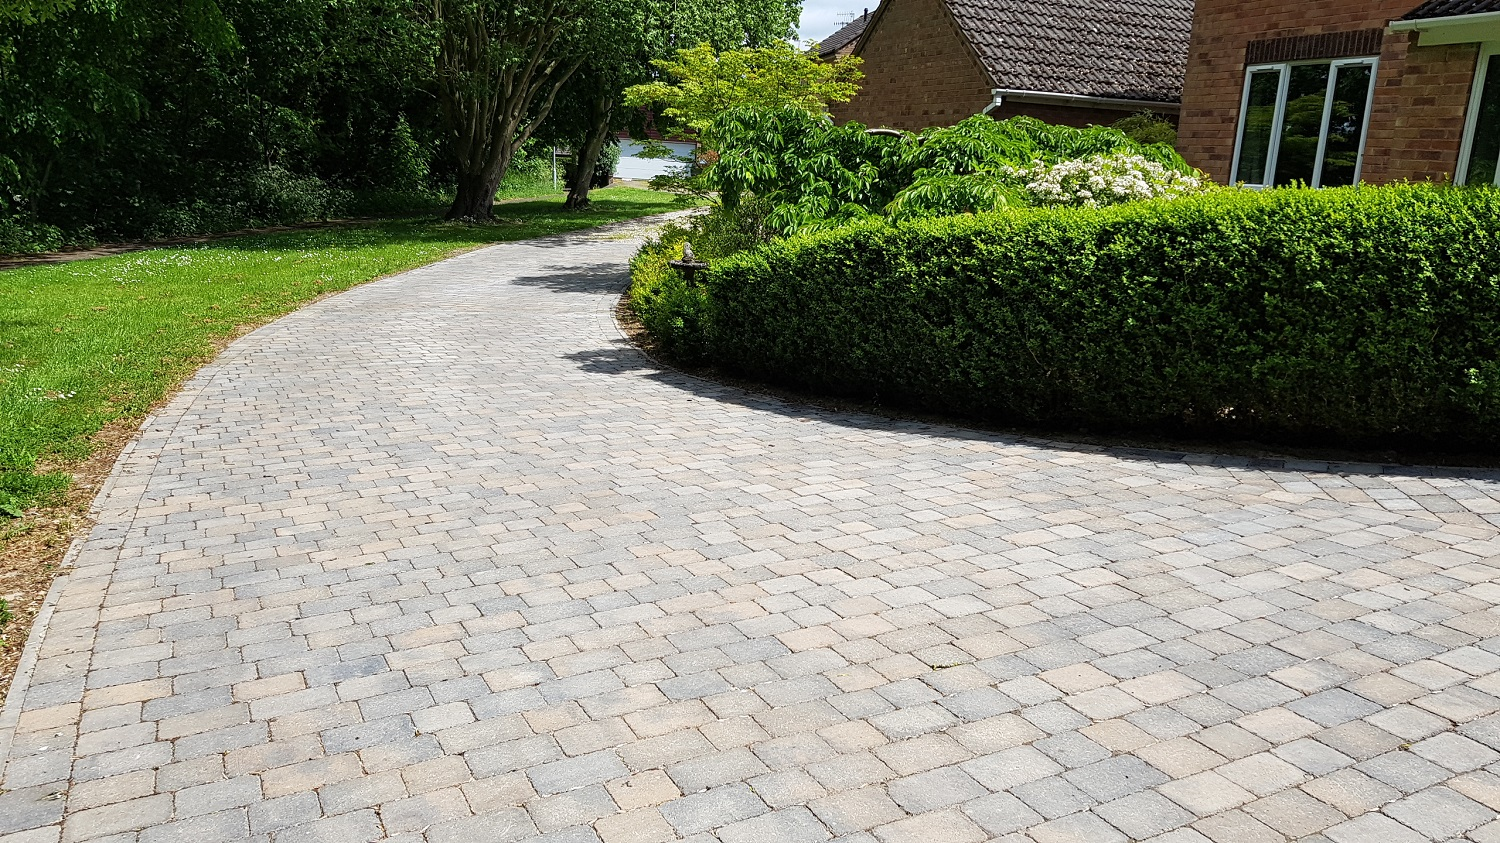 C28 Plaspave Sorrento Granite Stone and Sarsen Stone Block Paving Driveway at Linacre Woods in Chest